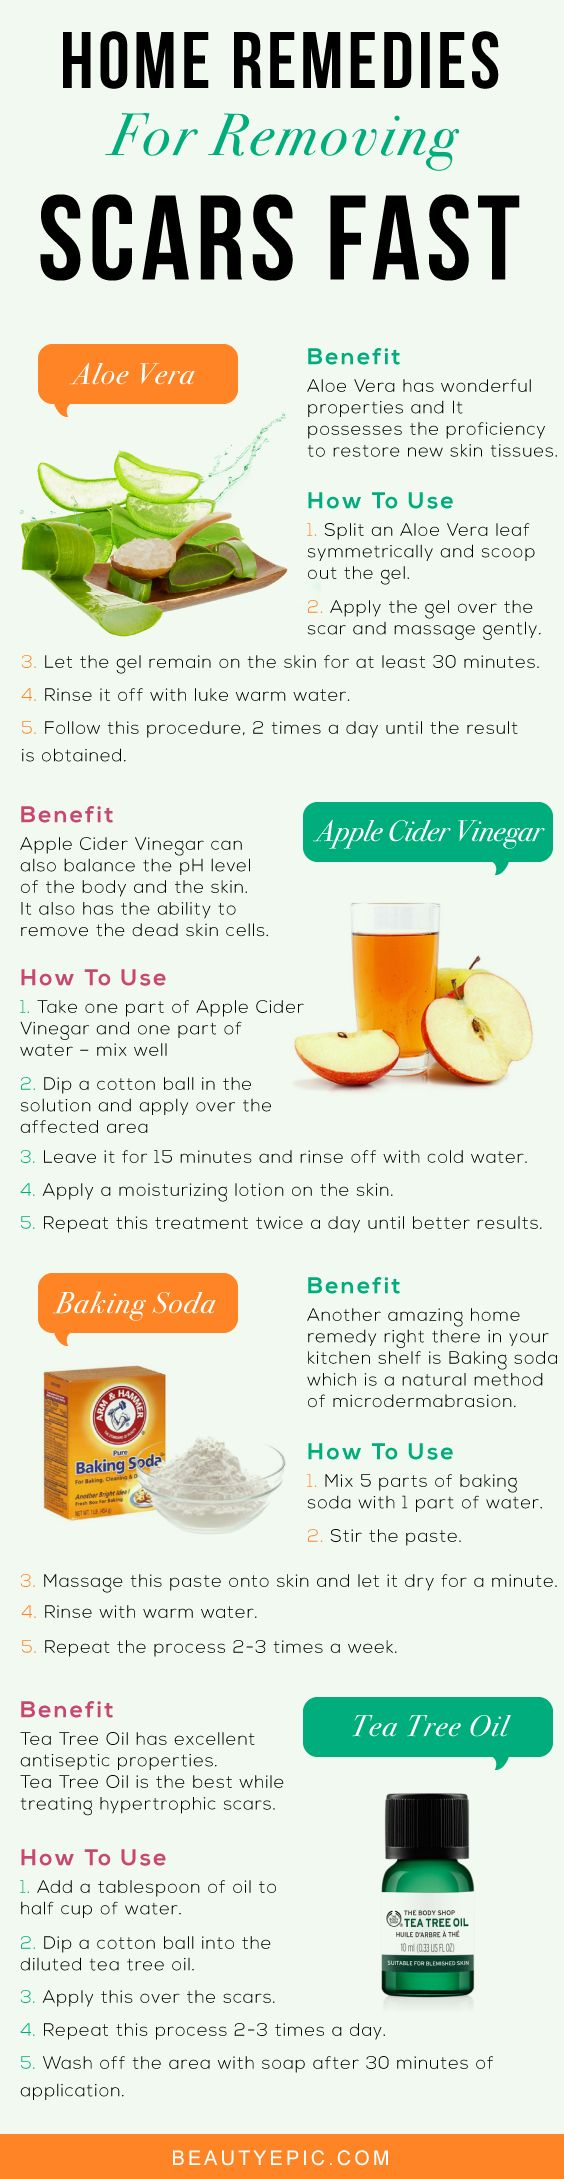 Most Effective Home Remedies for Removing Scars Fast